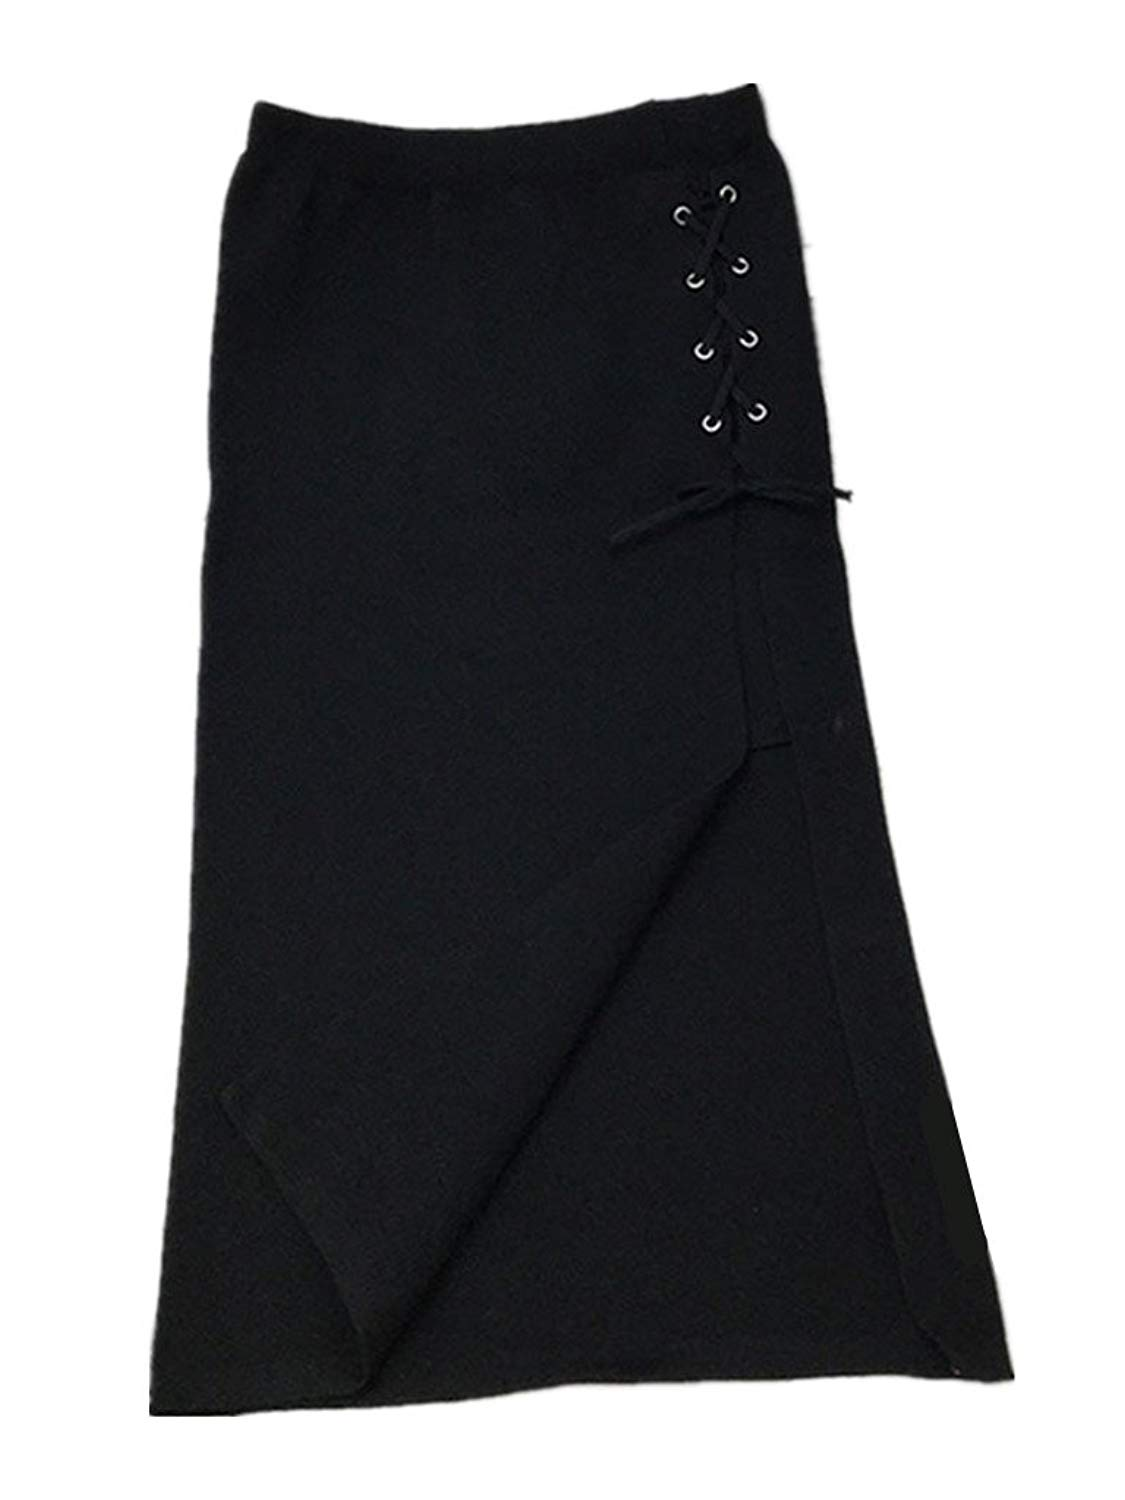 ed14caef8aa Get Quotations · Season Show Women s High Waisted Pencil Skirt Slit Knit  Bodycon Midi Skirt